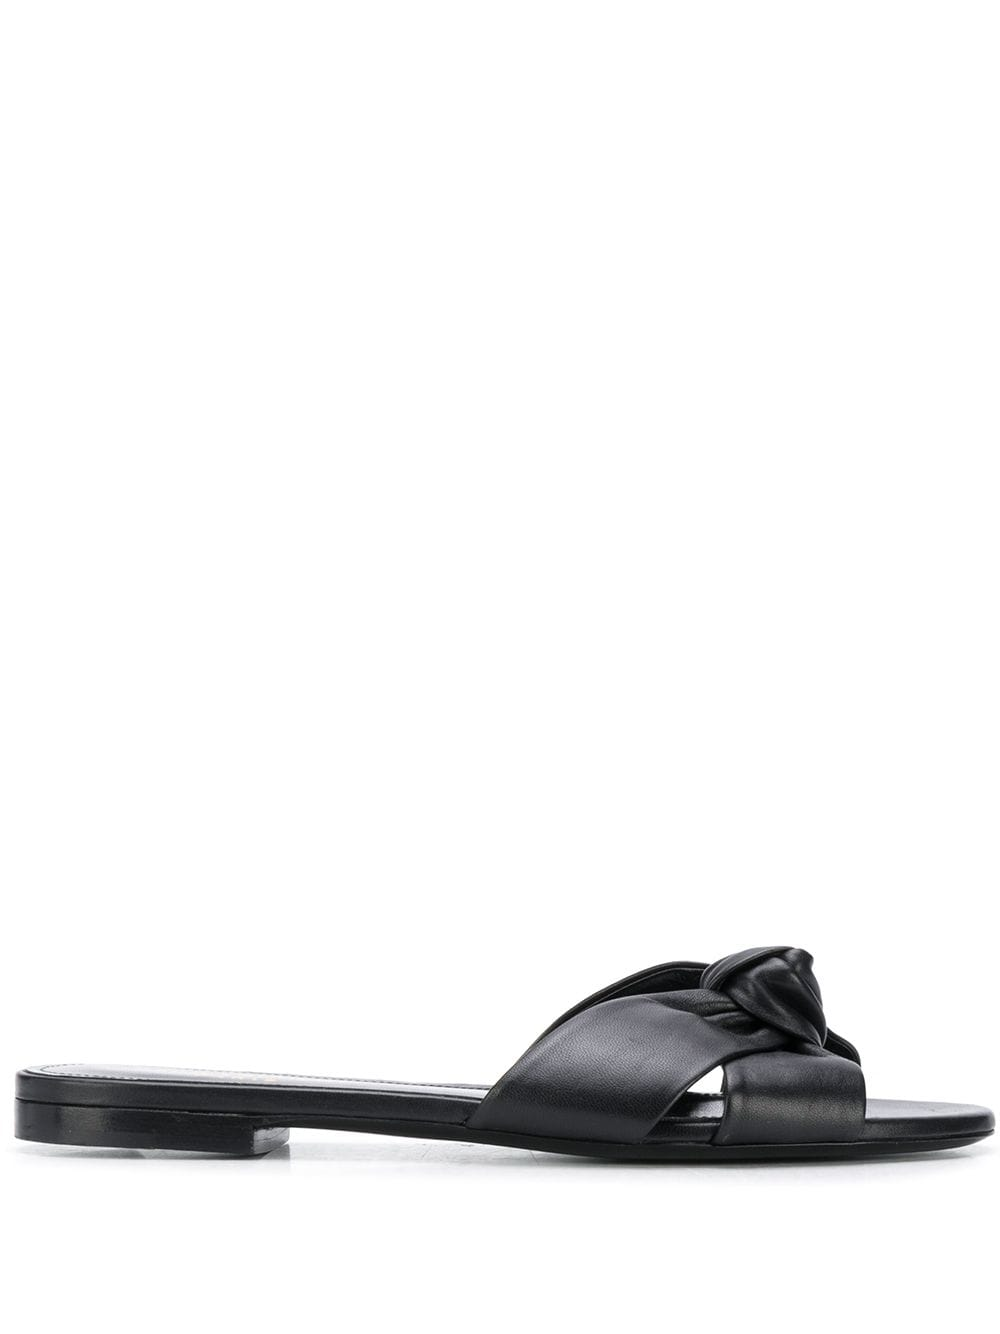 Biana Slip-On Sandals